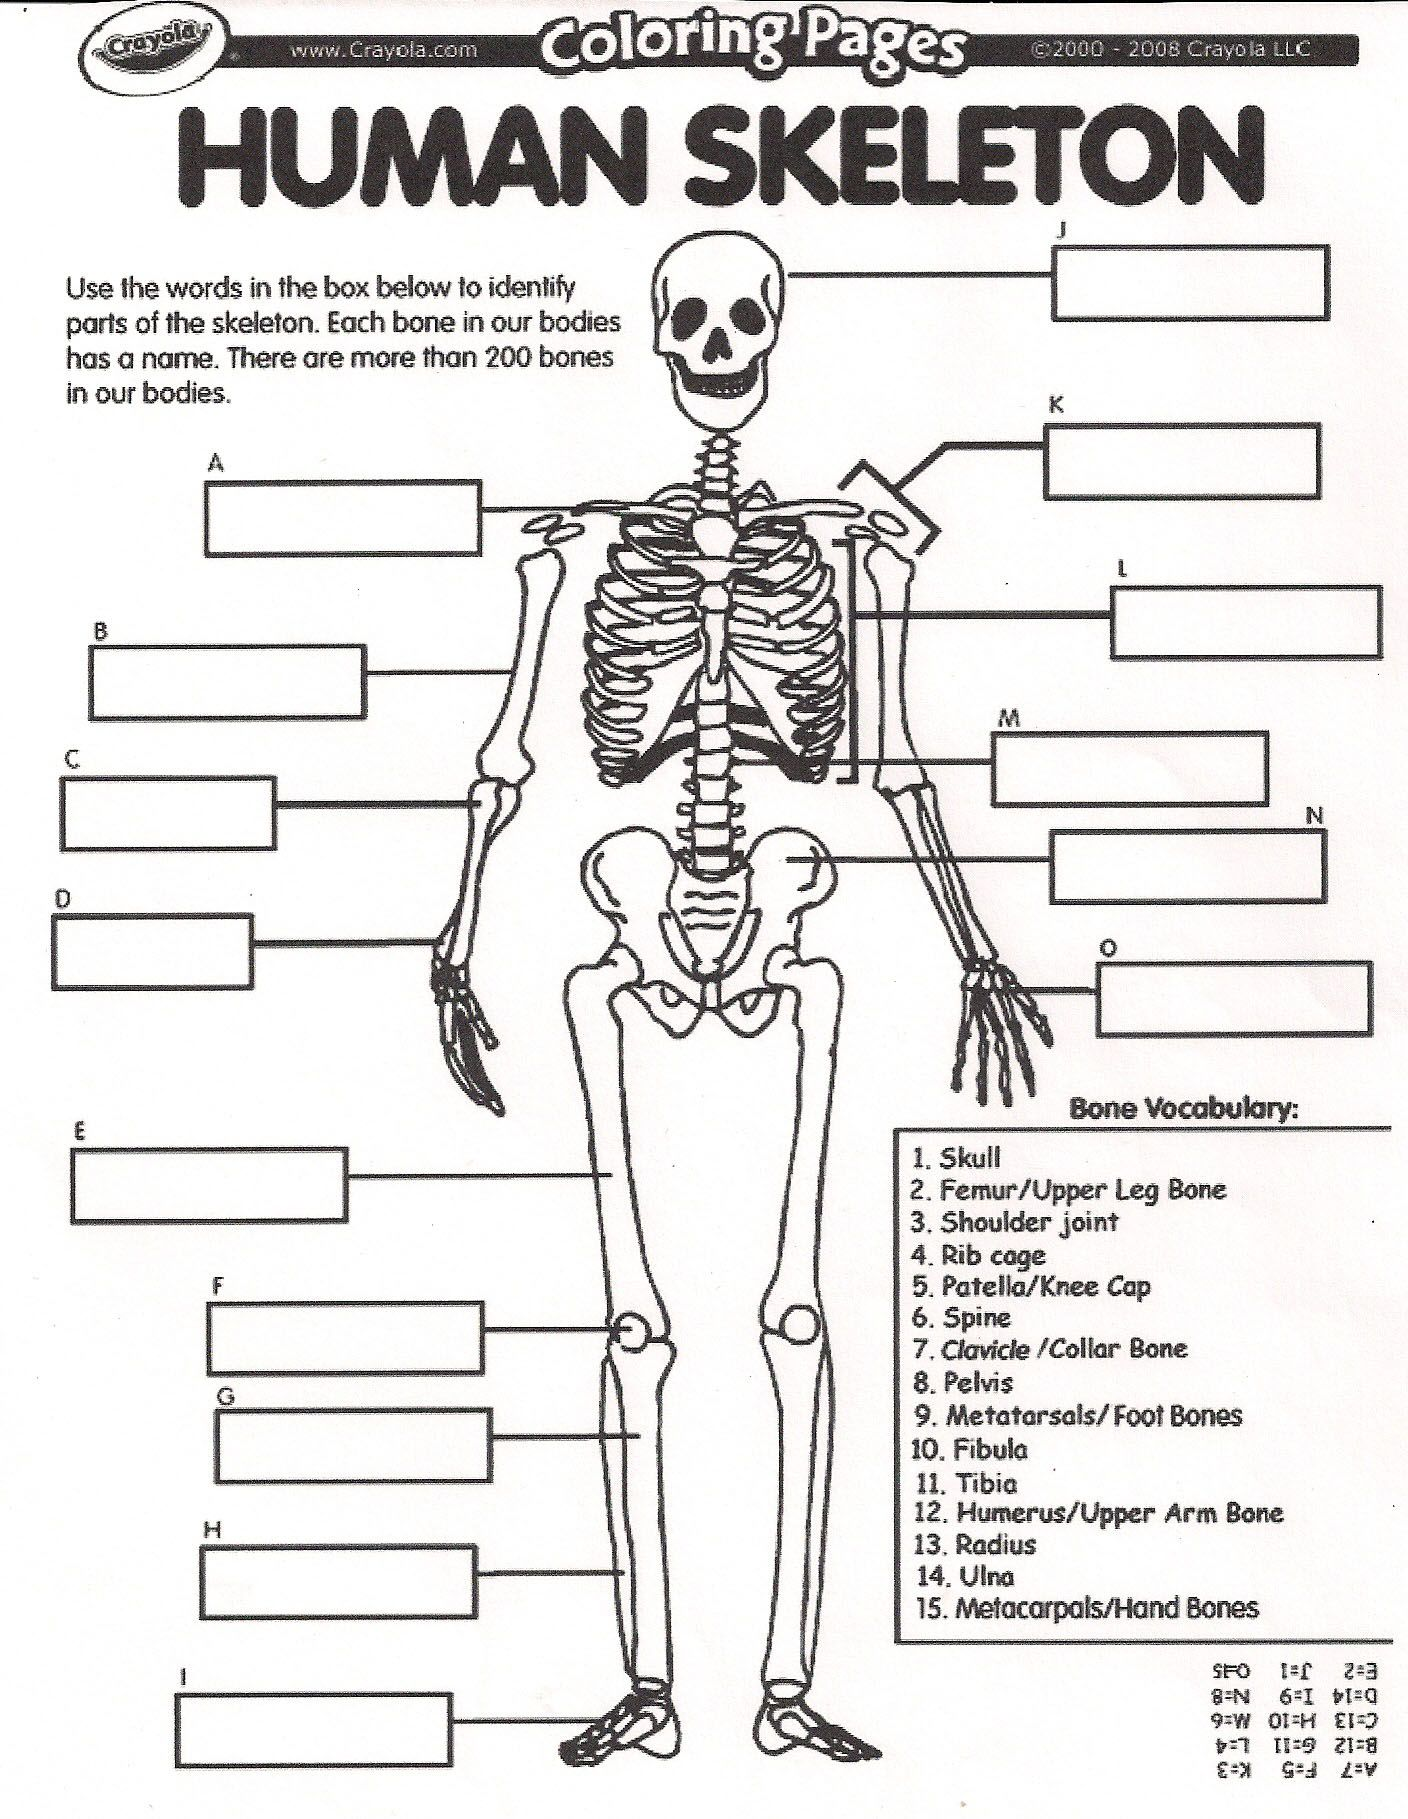 unlabeled human skeleton diagram   unlabeled human skeleton diagram human  bone structure unlabled skeleton diagram unlabeled